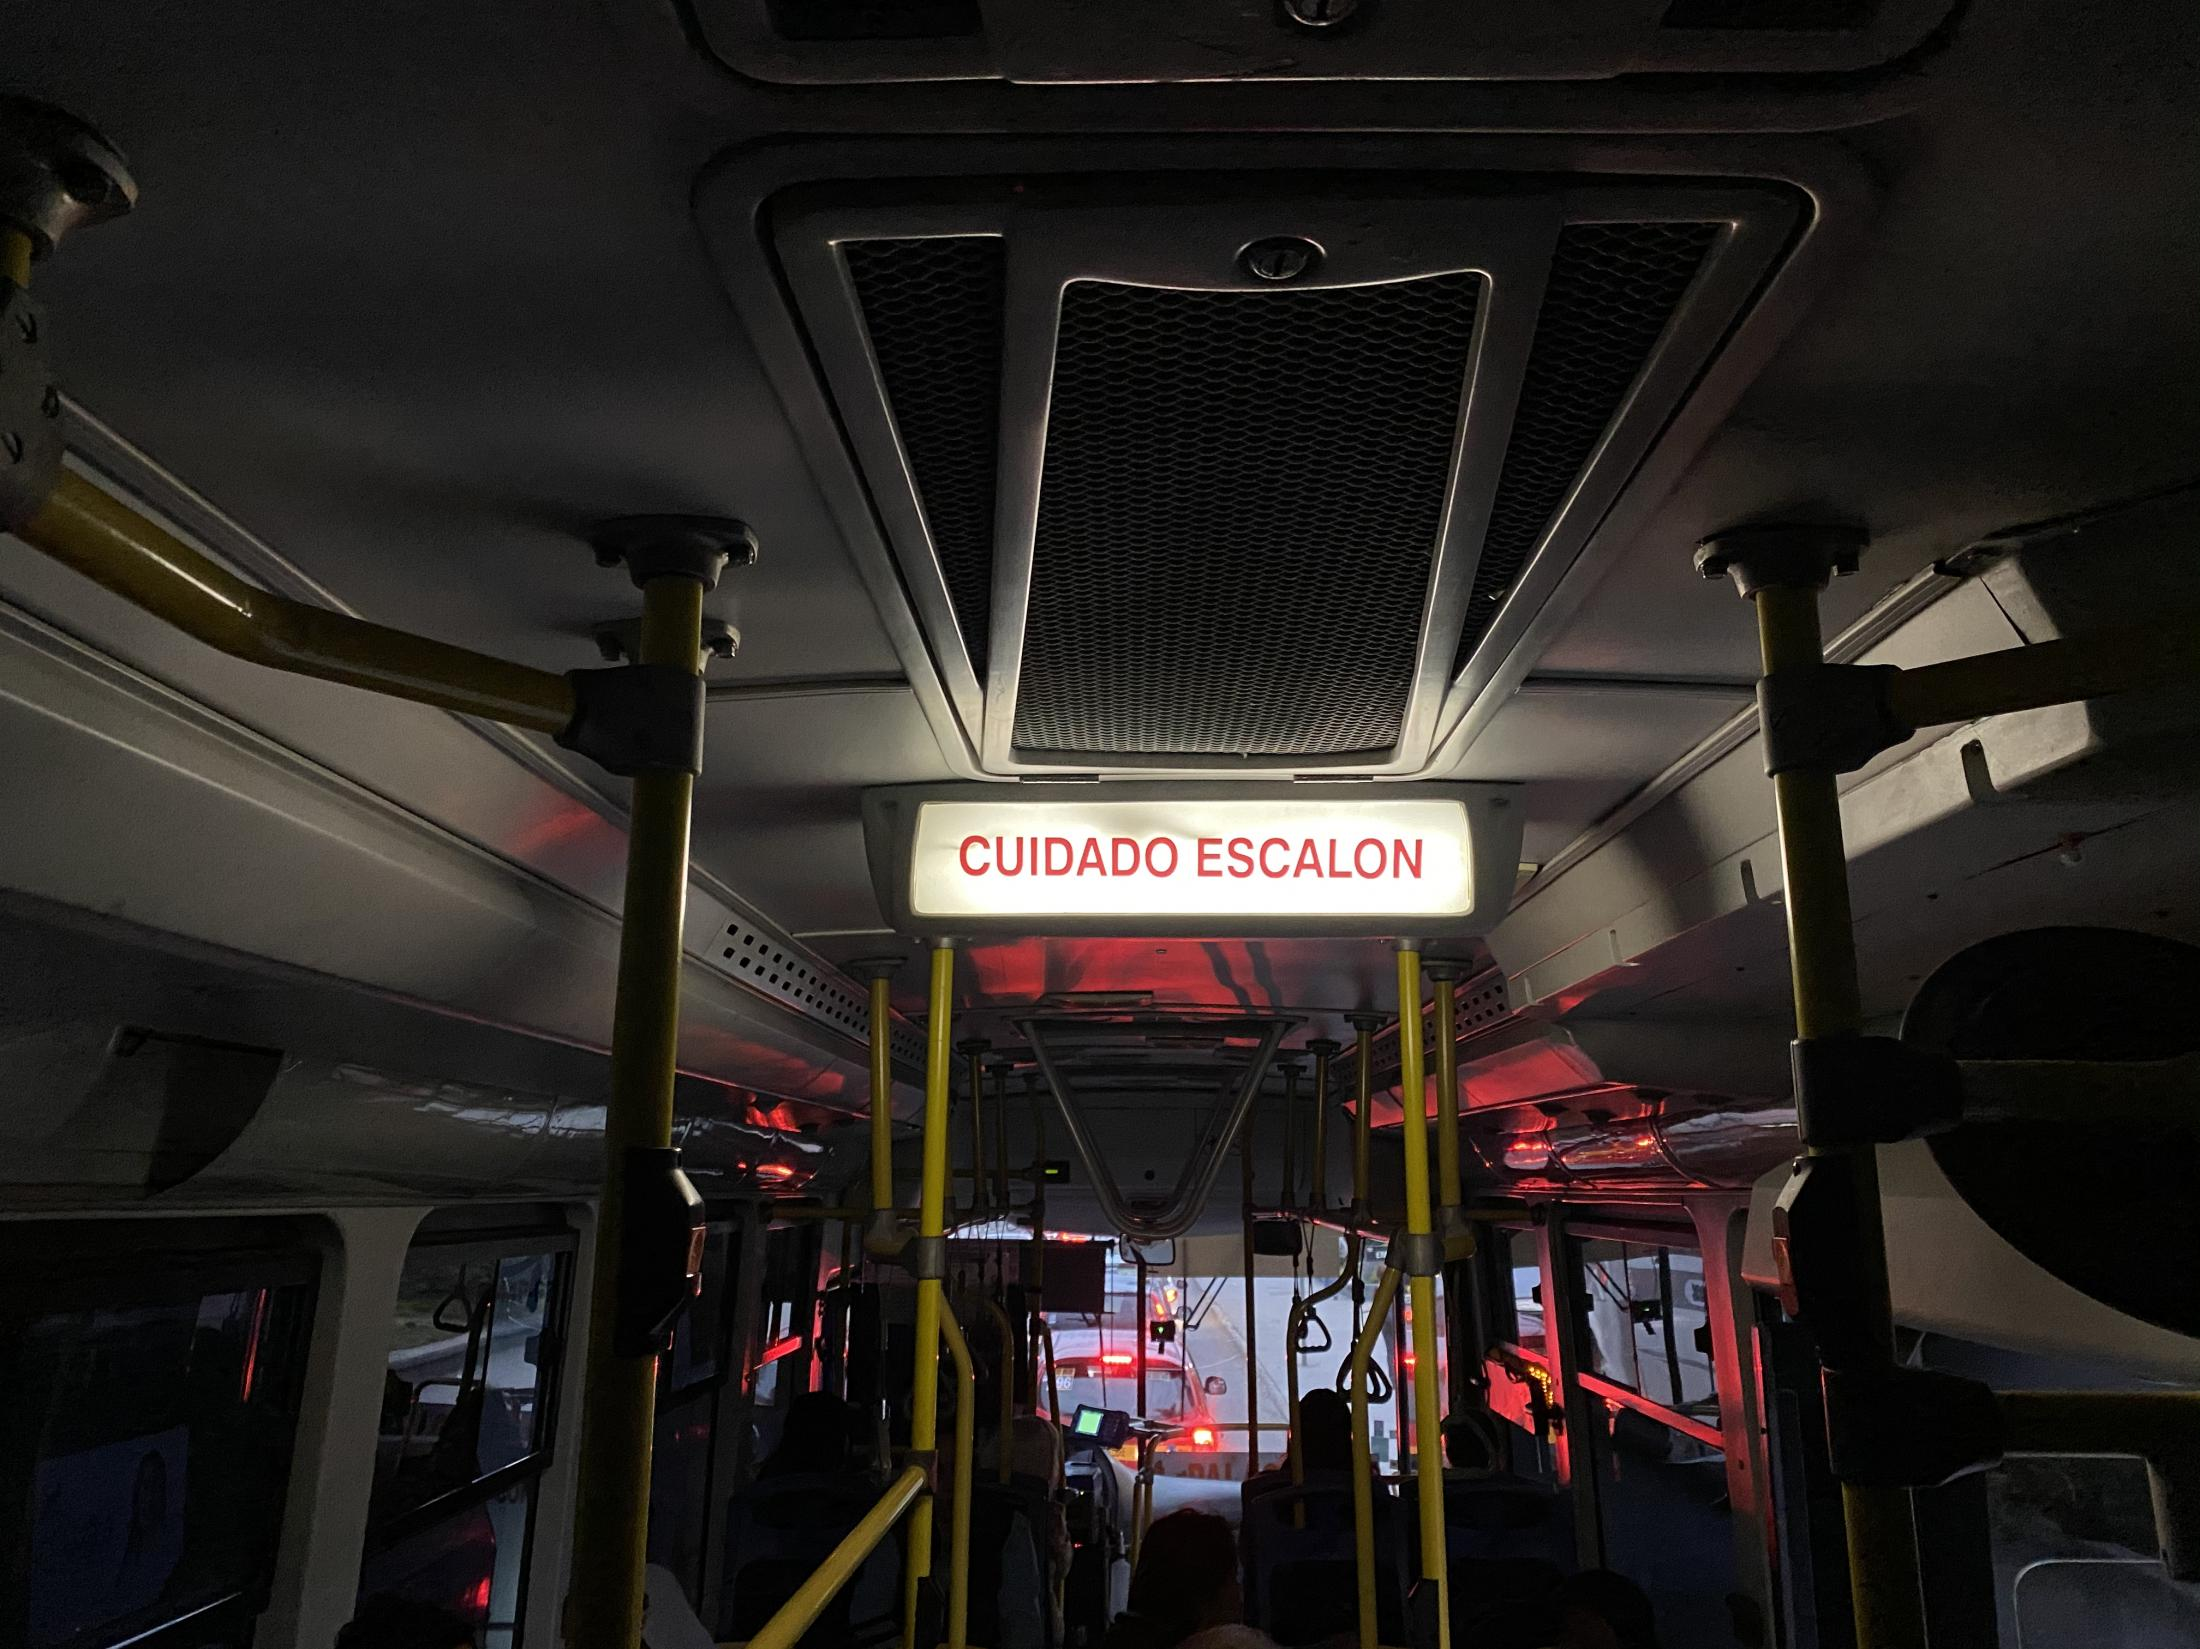 Tampico, Tamaulipas México. 2020. Illuminated bus sign warning passengers to be careful with a stair. I was on my way to fix problems and comfort someone very dear to me. It was a frustrating day.